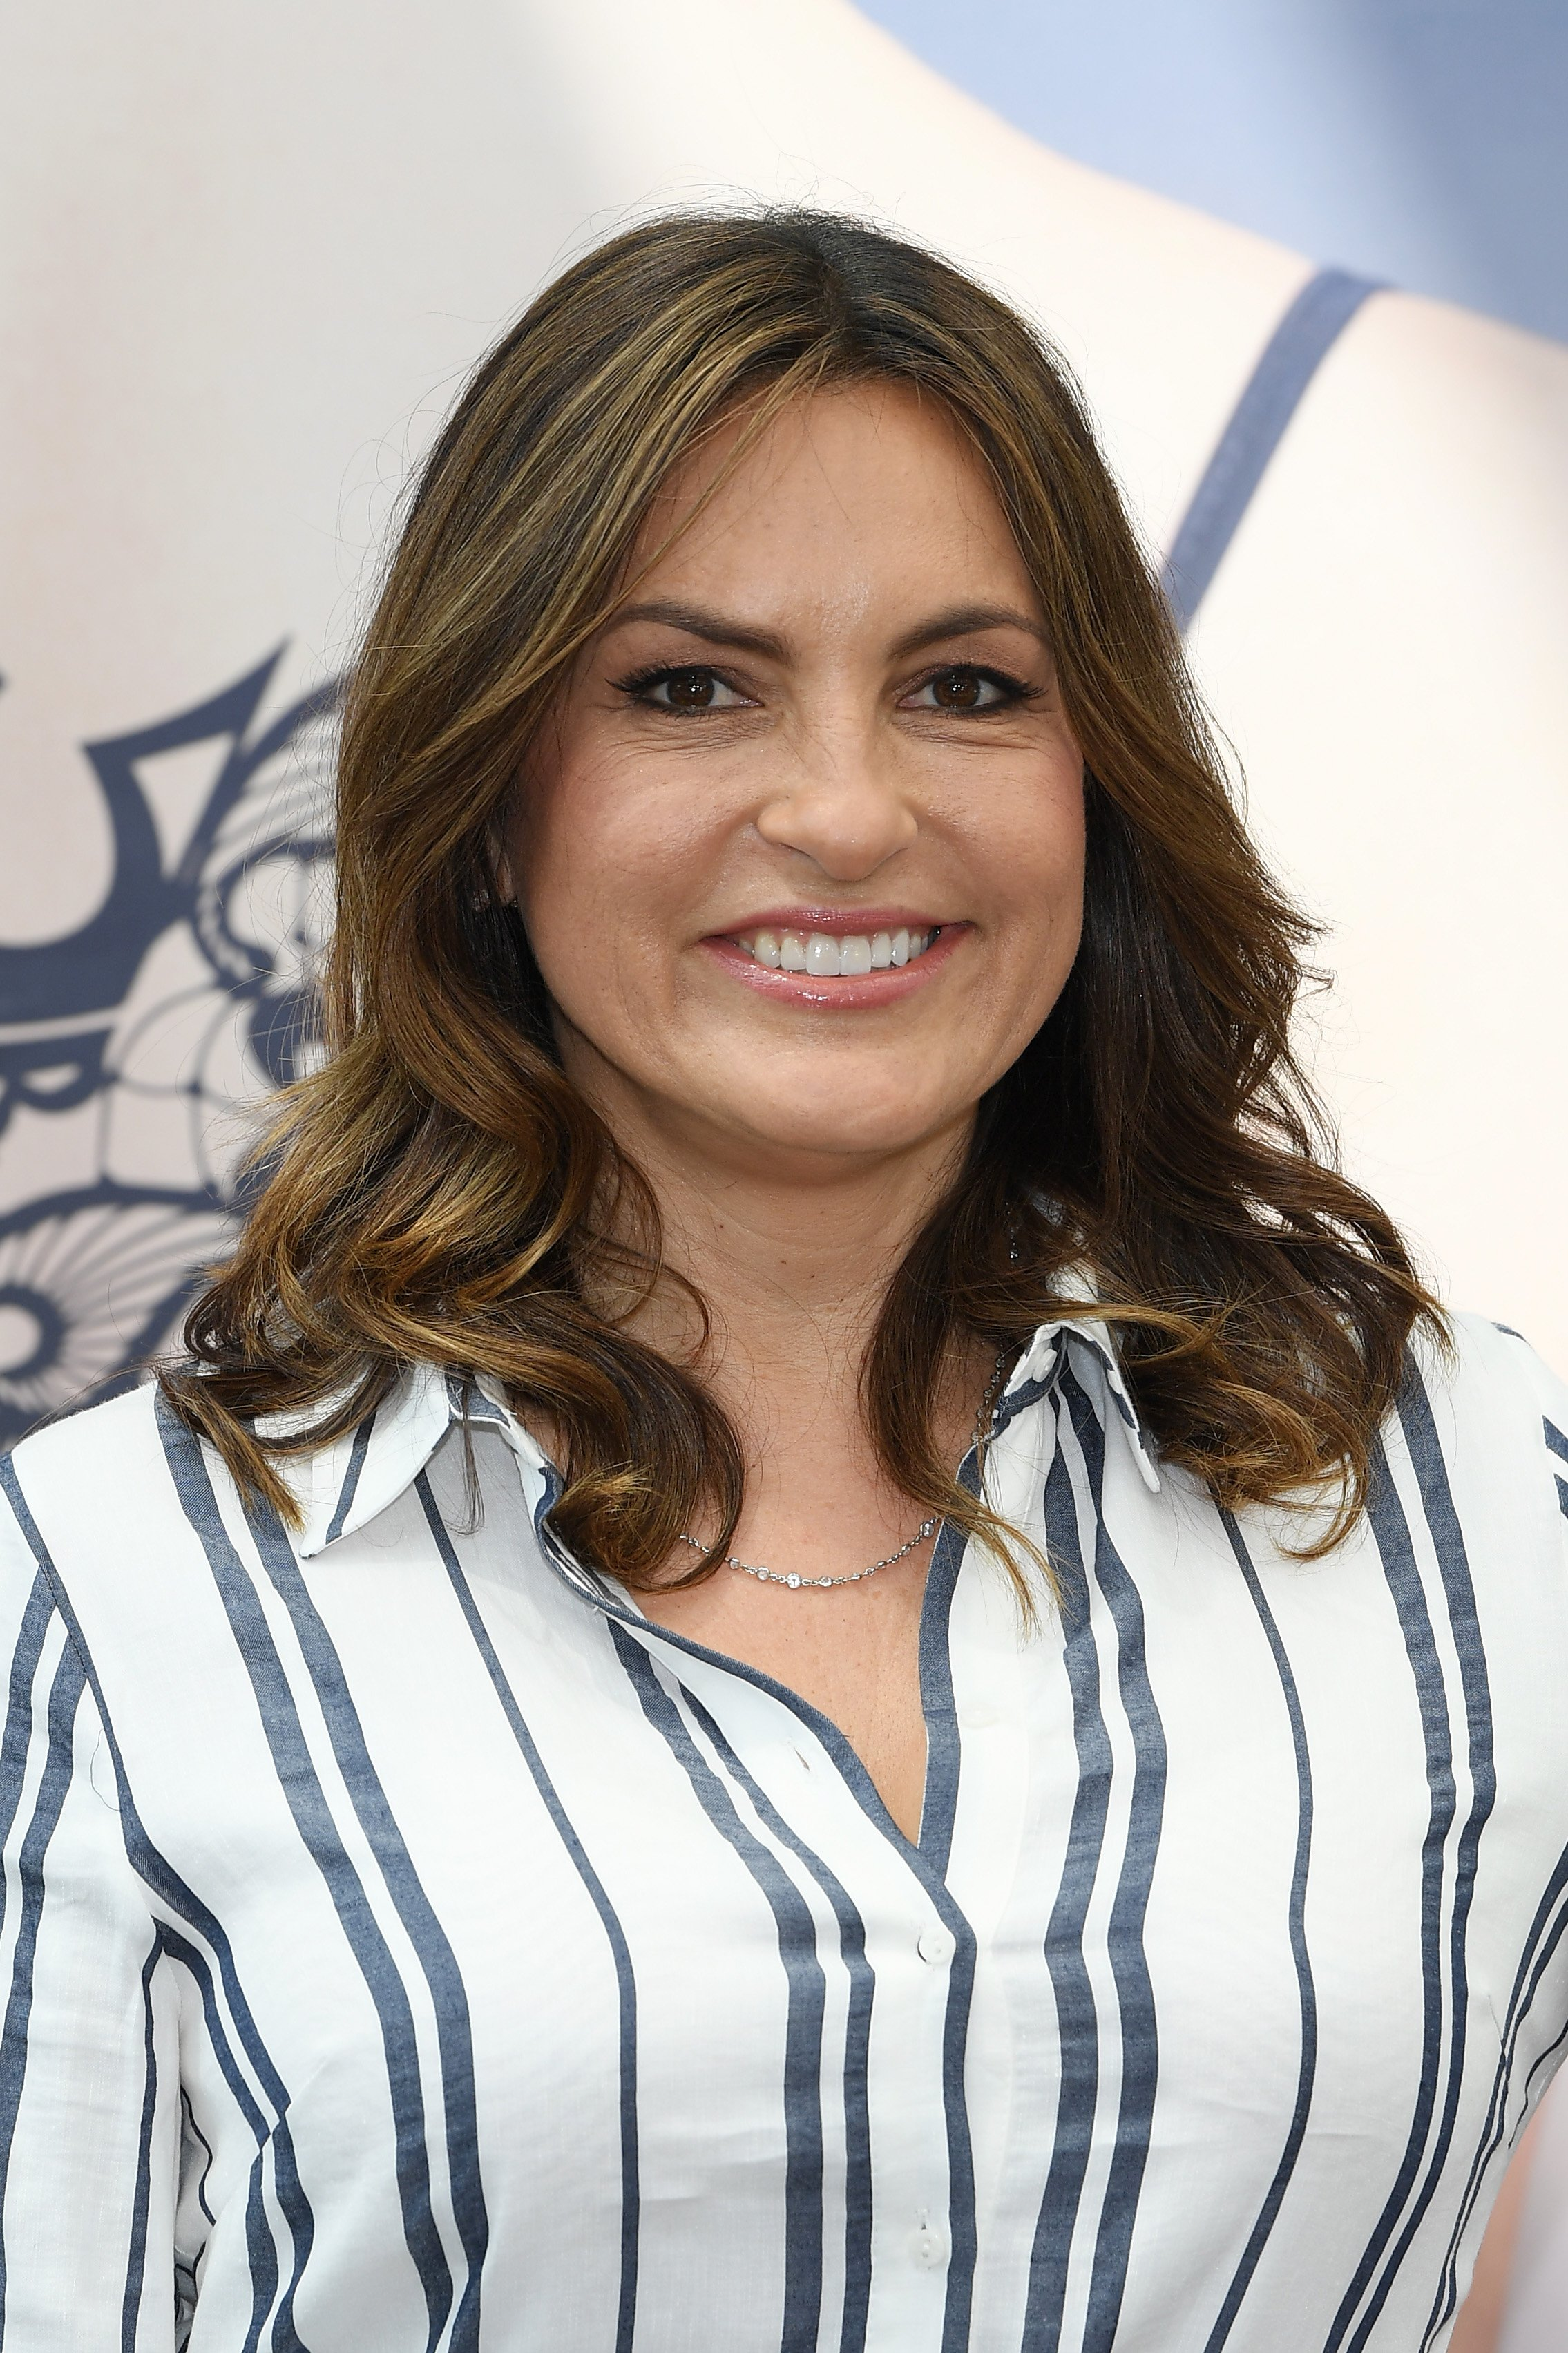 """Mariska Hargitay from the series """"Law & Order: SVU"""" attends a photocall during the 58th Monte Carlo TV Festival on June 17, 2018 in Monte-Carlo, Monaco 